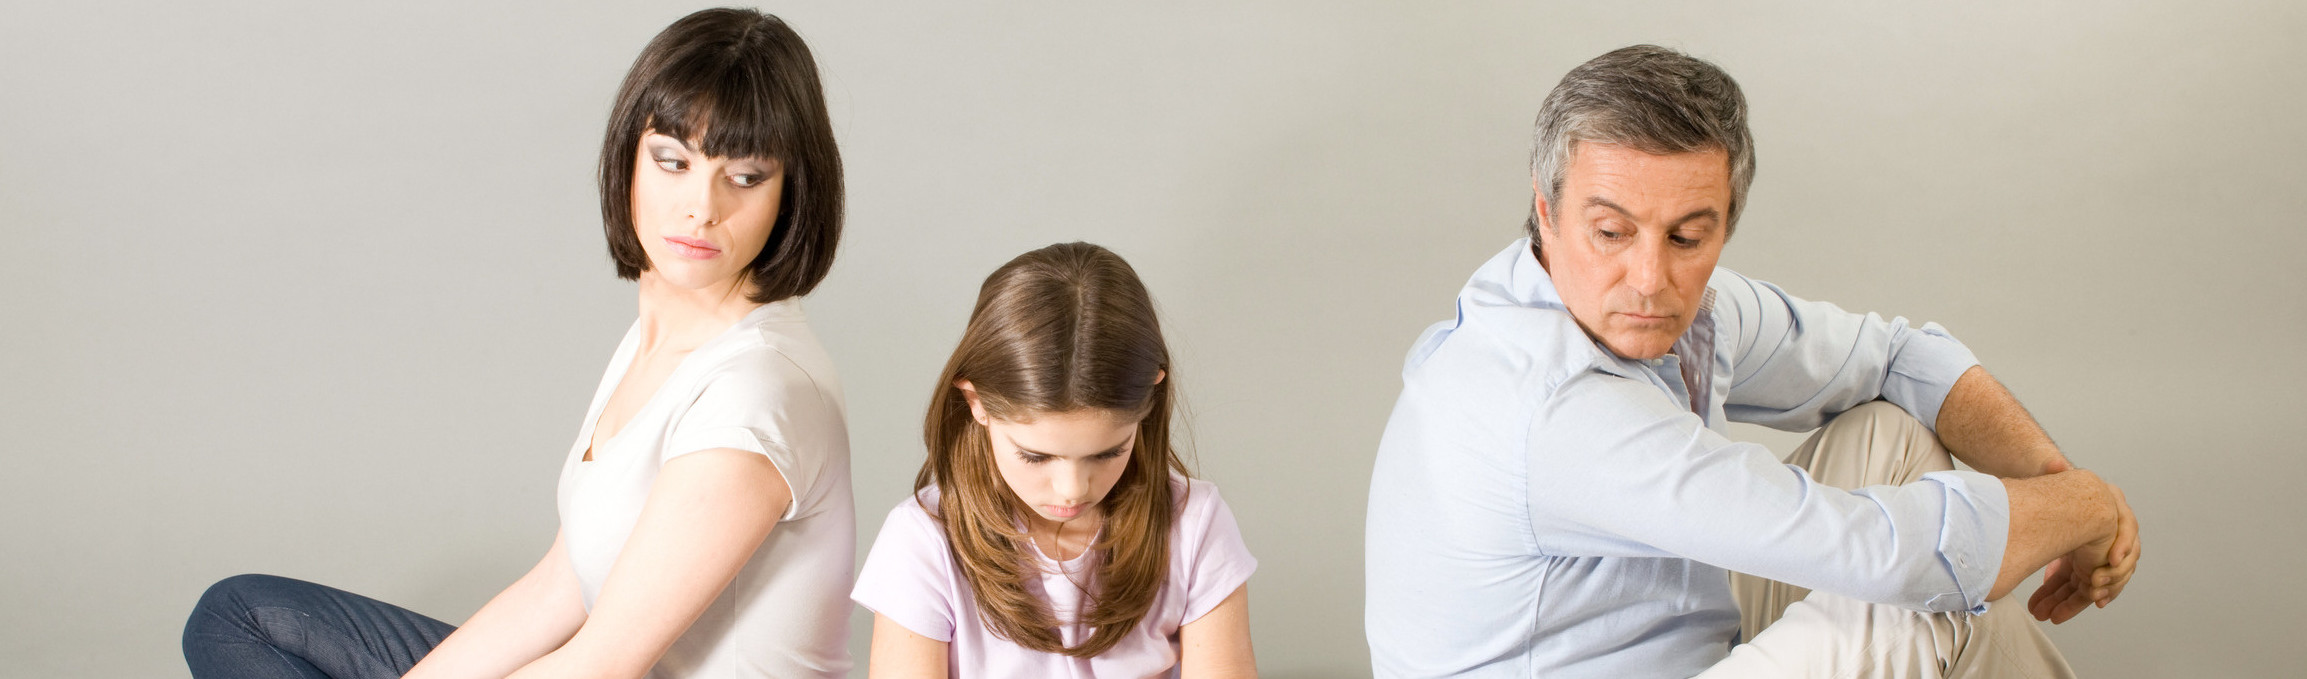 Parenting Teenagers: Tips You Can Count On